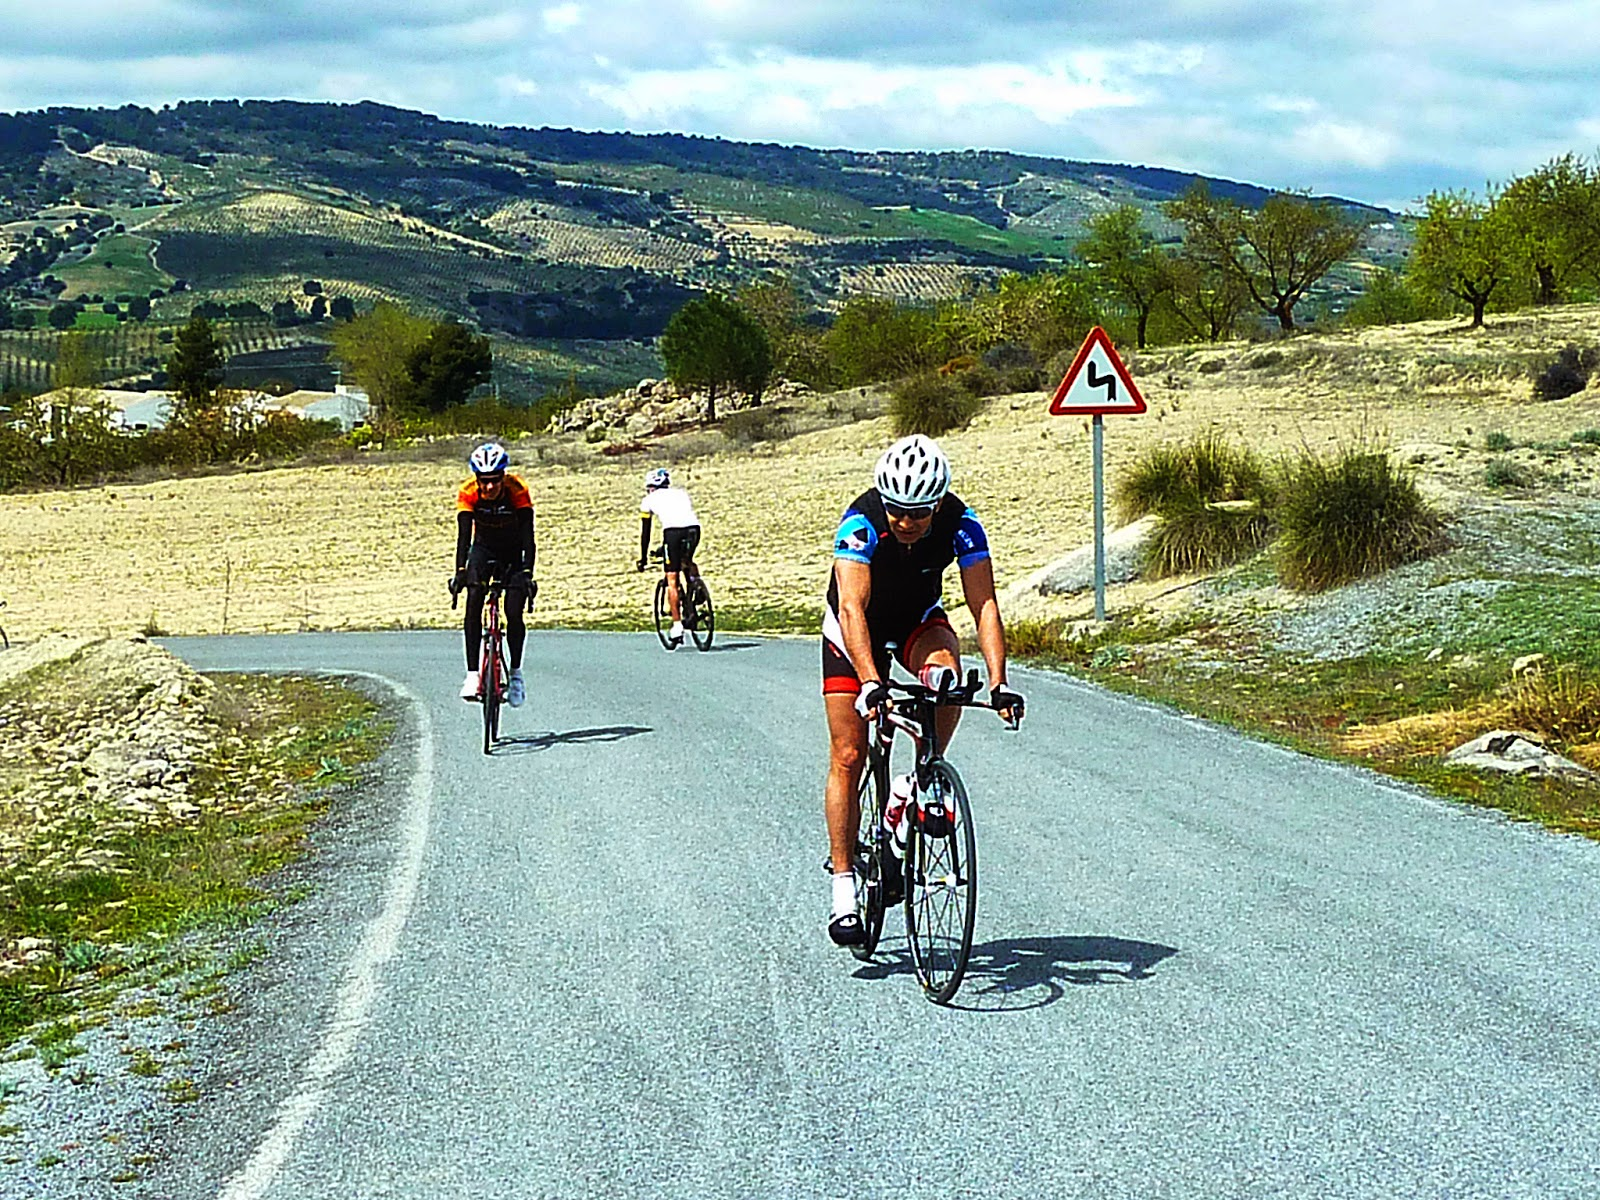 Biketours from Cordoba are a great way to Cycle Andalucia!